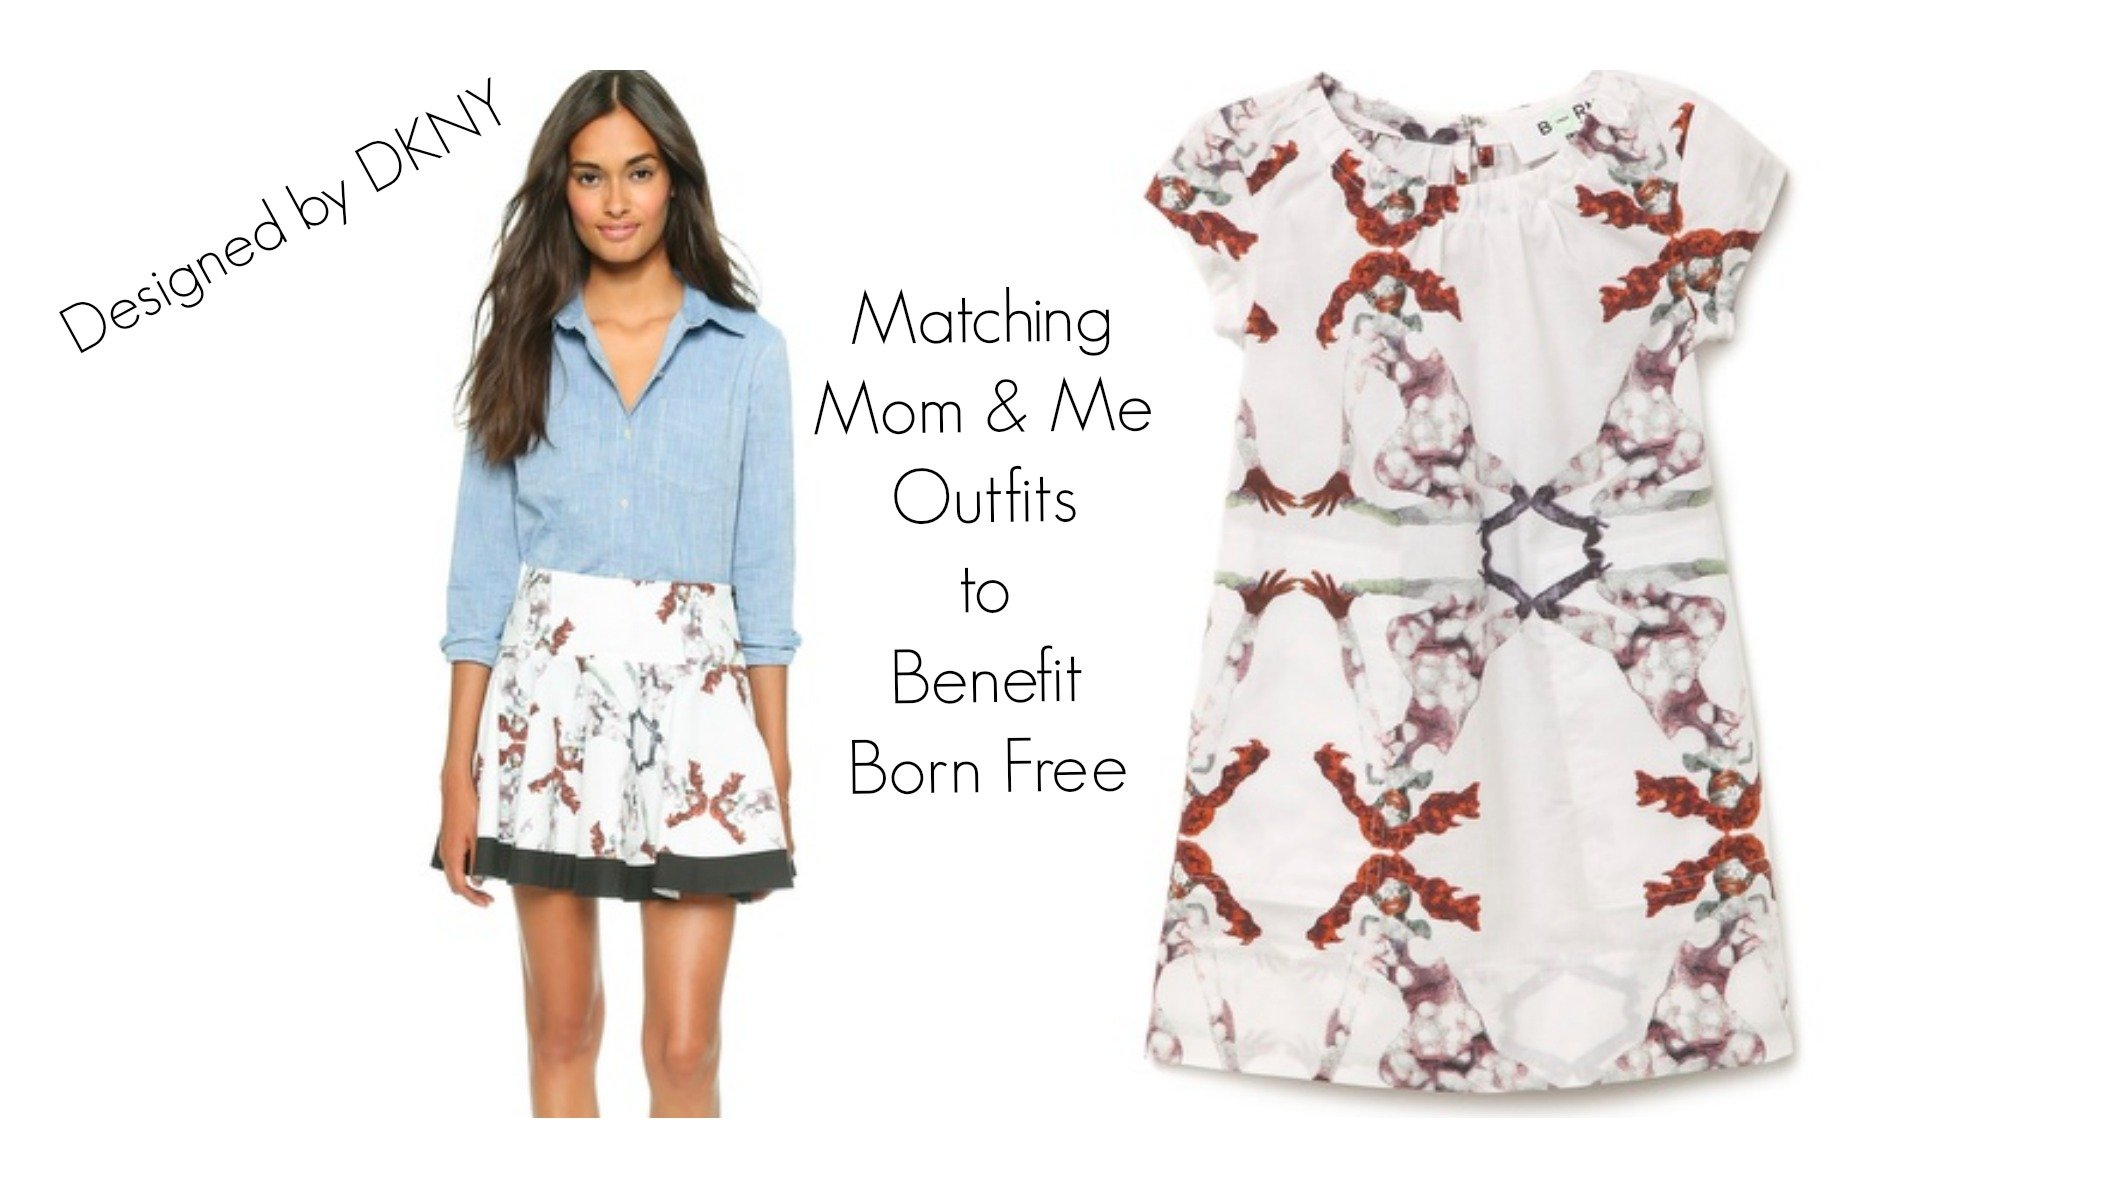 DKNY Mother & Daughter Matching Outfits to Benefit Born Free, Born Free DKNY Skirt, Matching Mother & Daughter DKNY Outfits